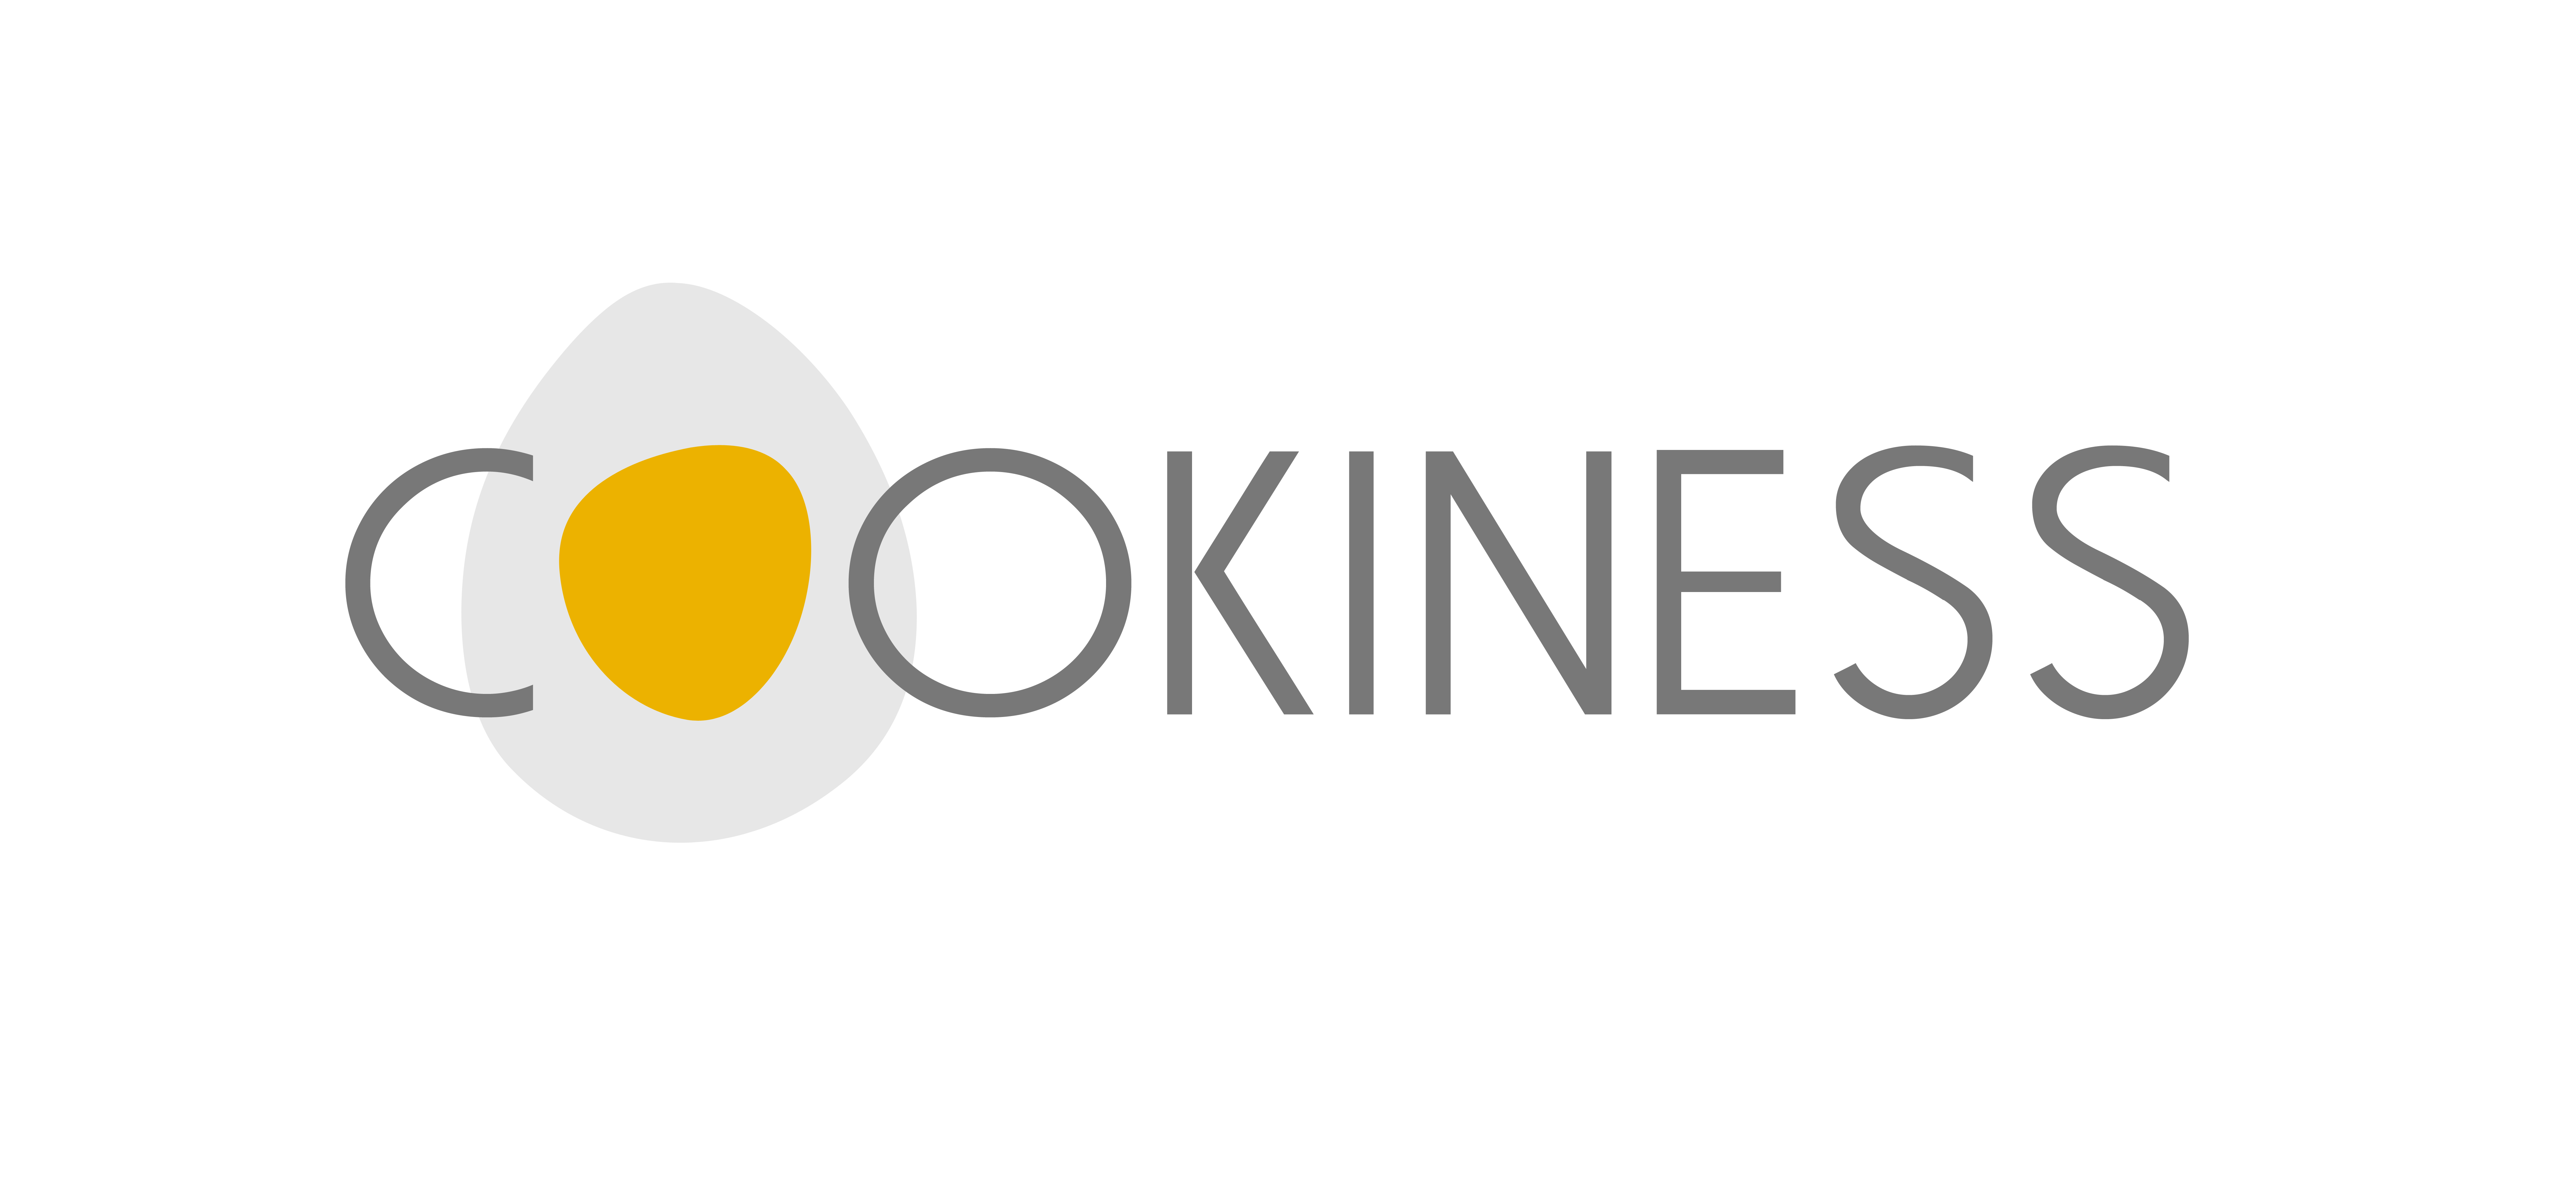 Cookiness logo